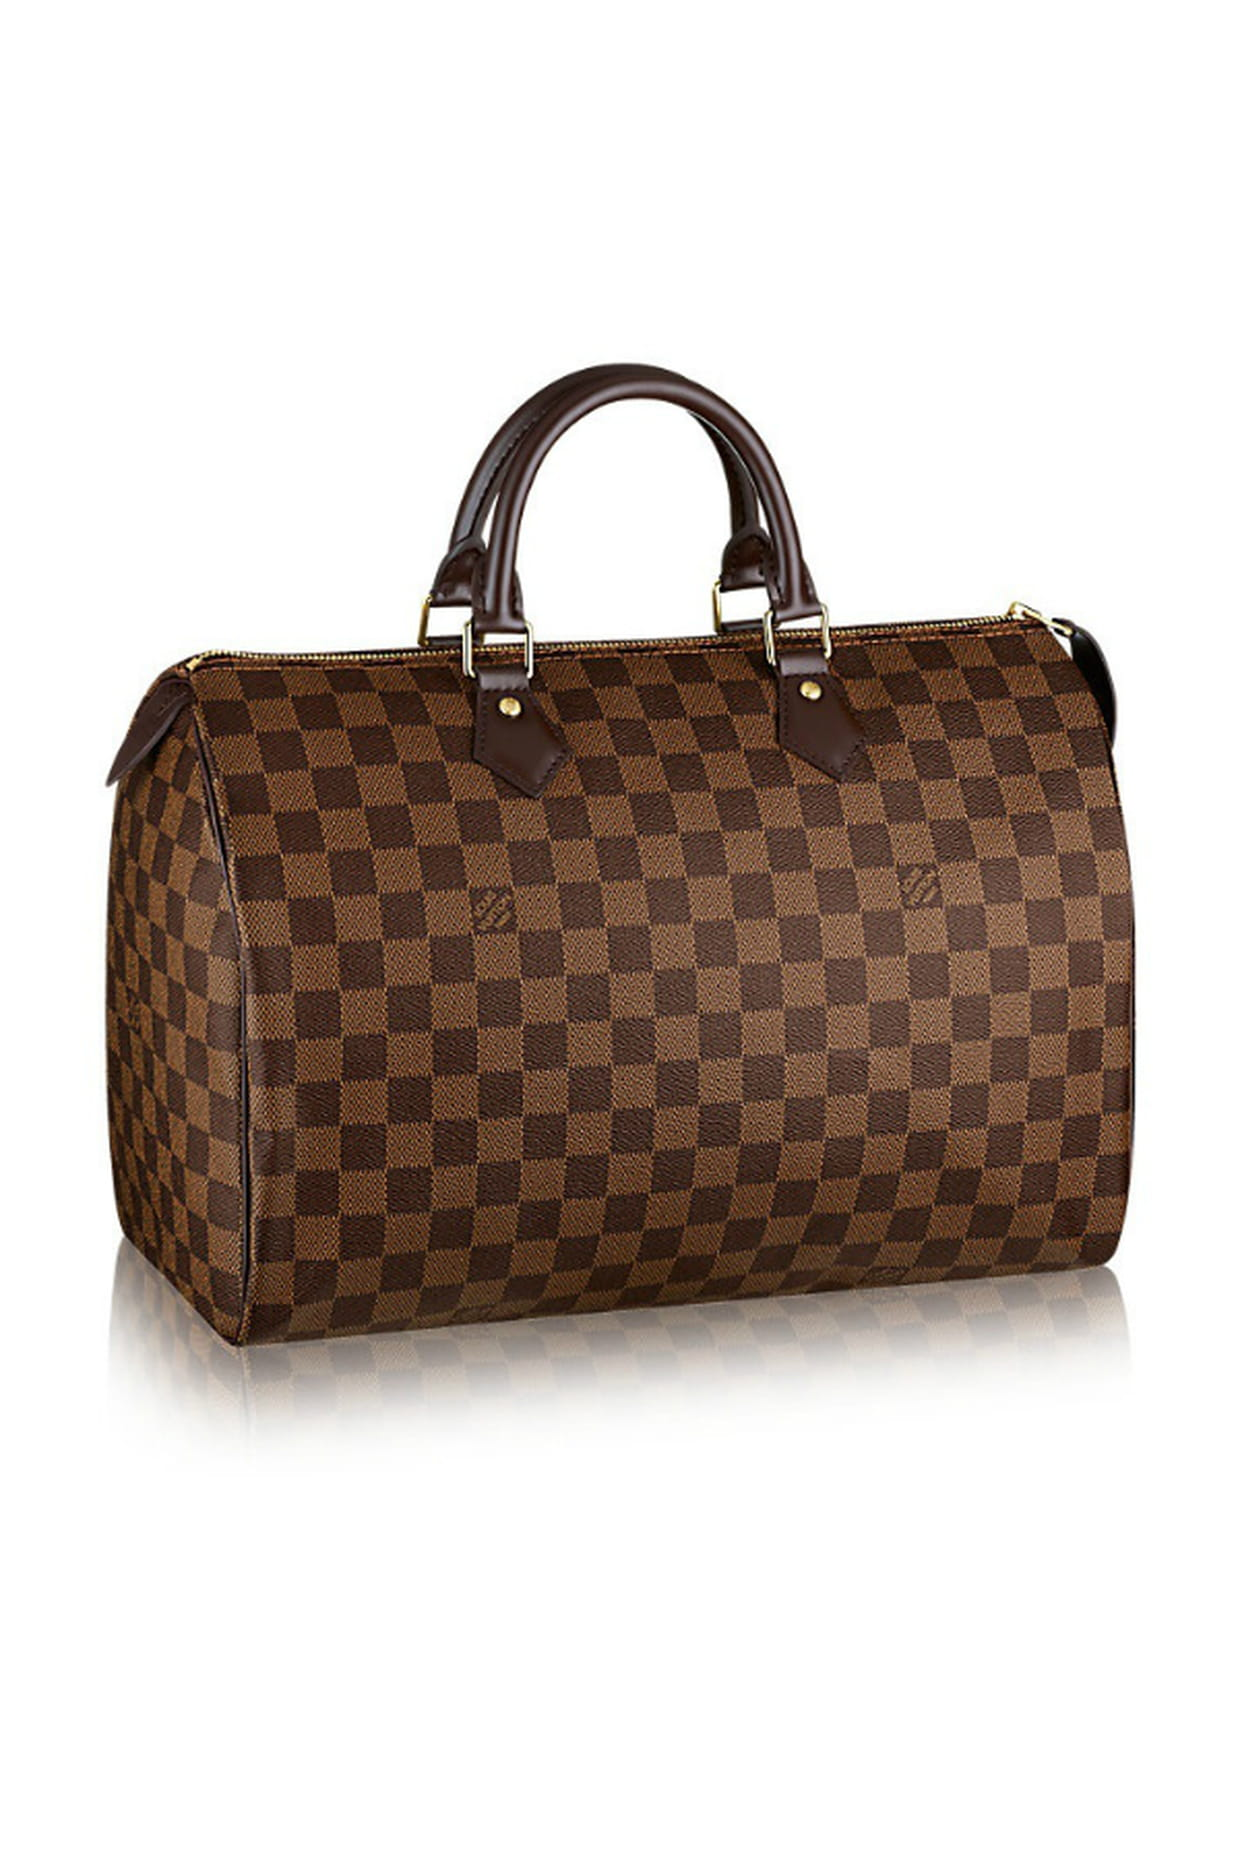 le sac  u0026quot speedy u0026quot  de louis vuitton